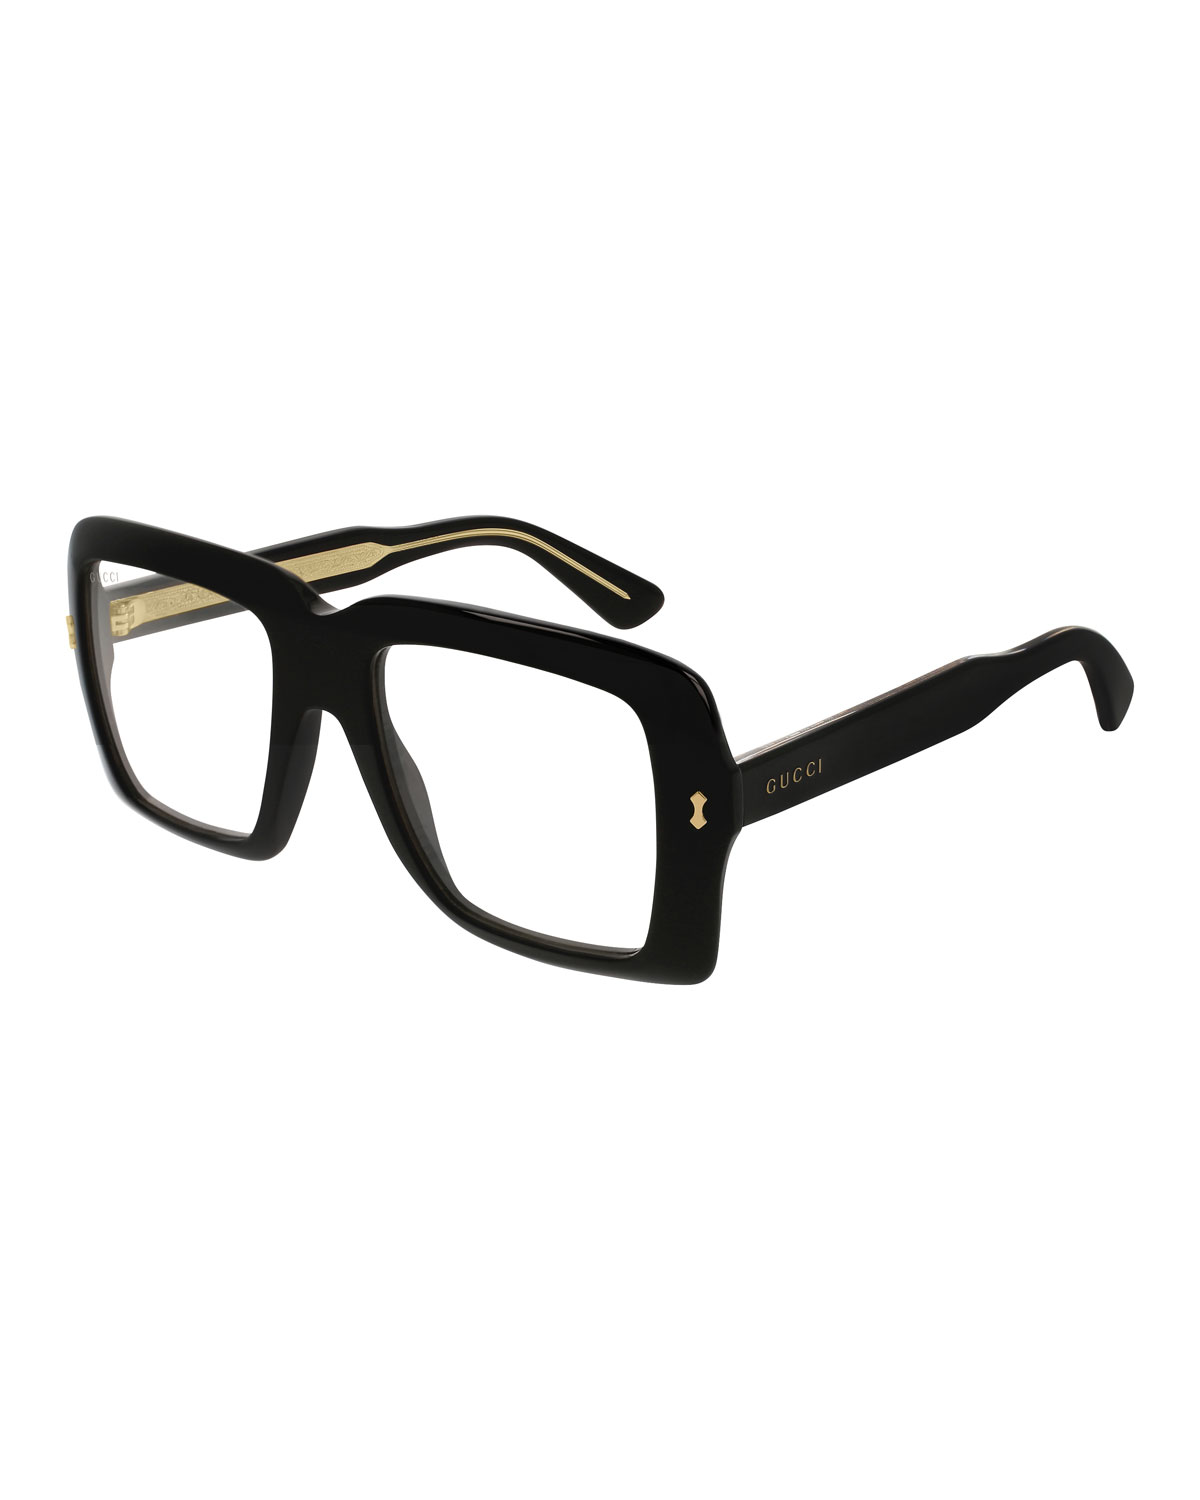 3d1916551c4 Gucci Unisex Bold Acetate Sunglasses with AR Coating